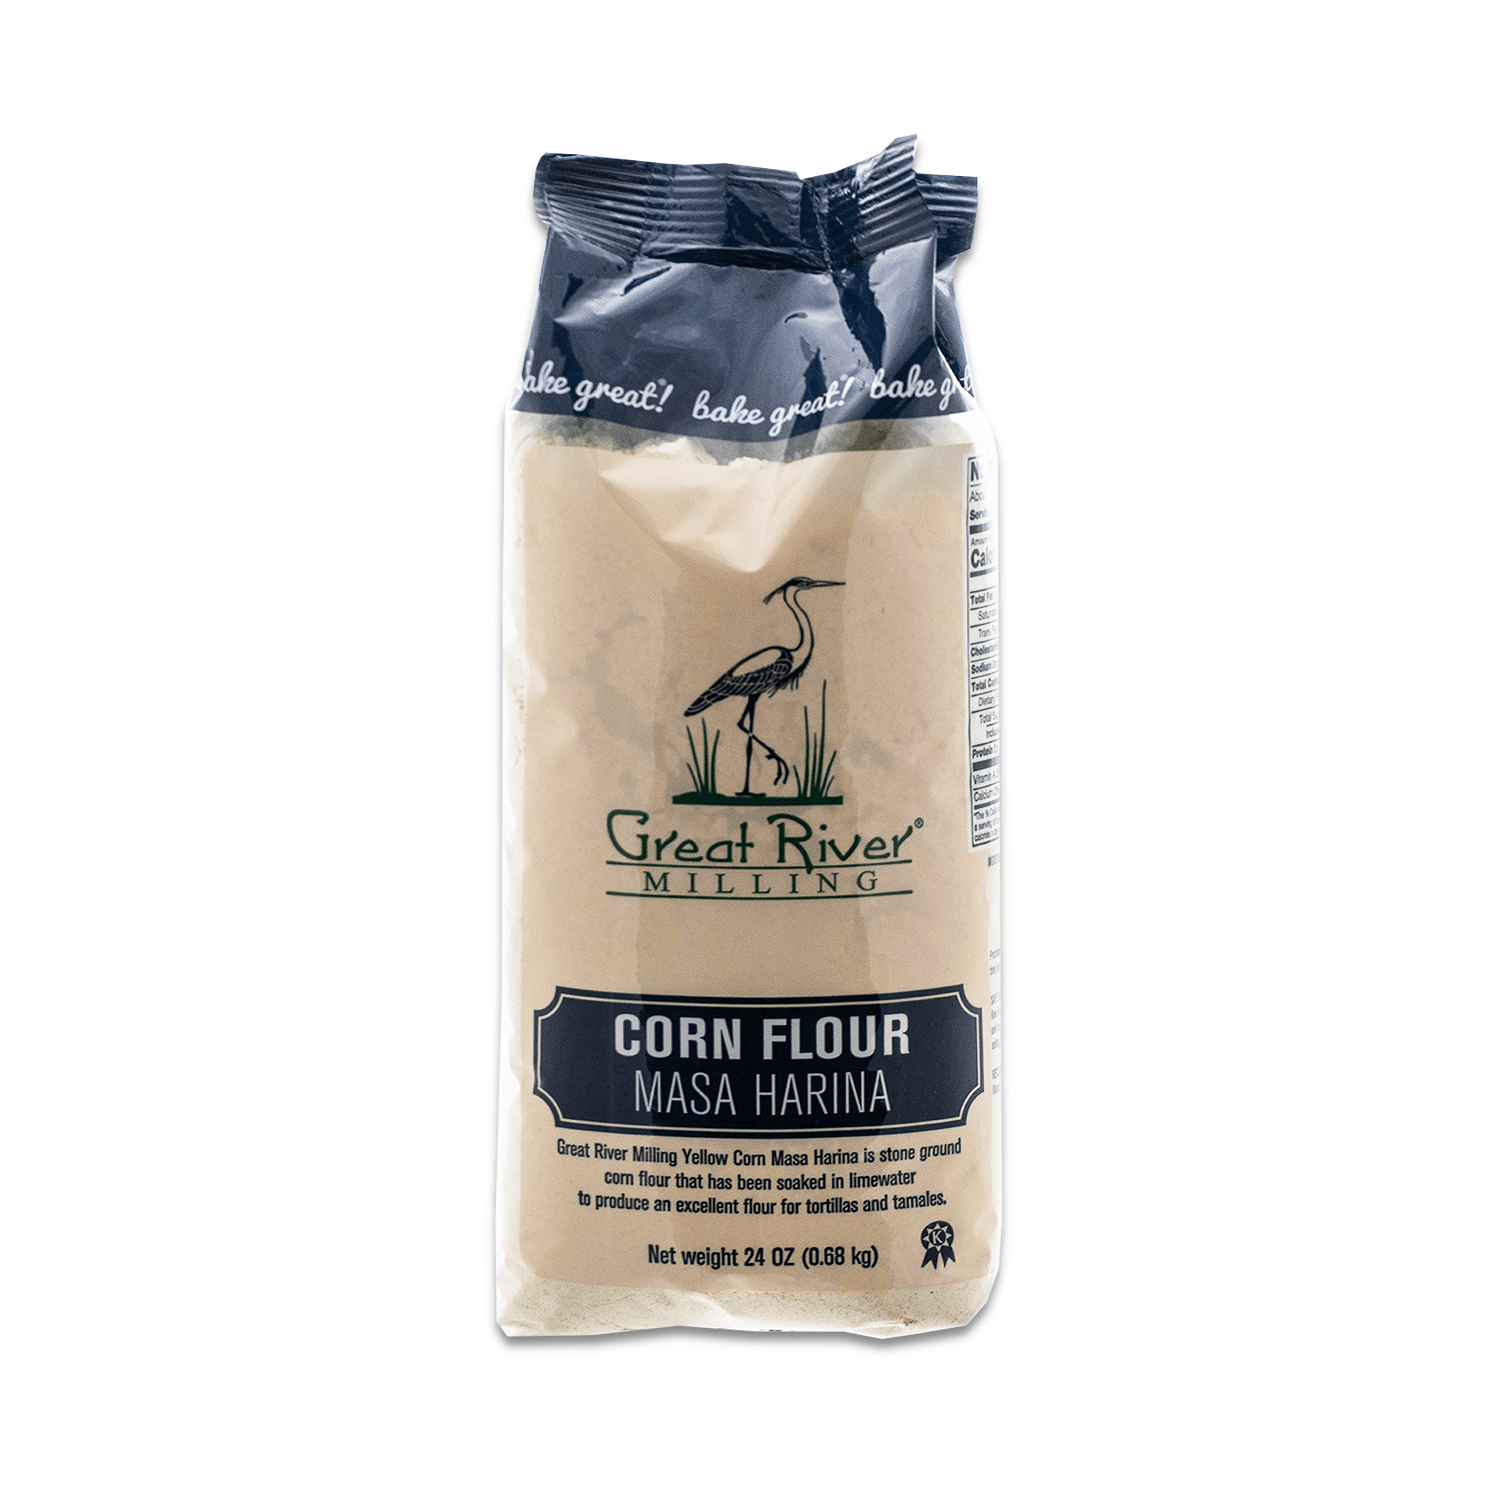 Great River Milling Corn Flour Masa Harina